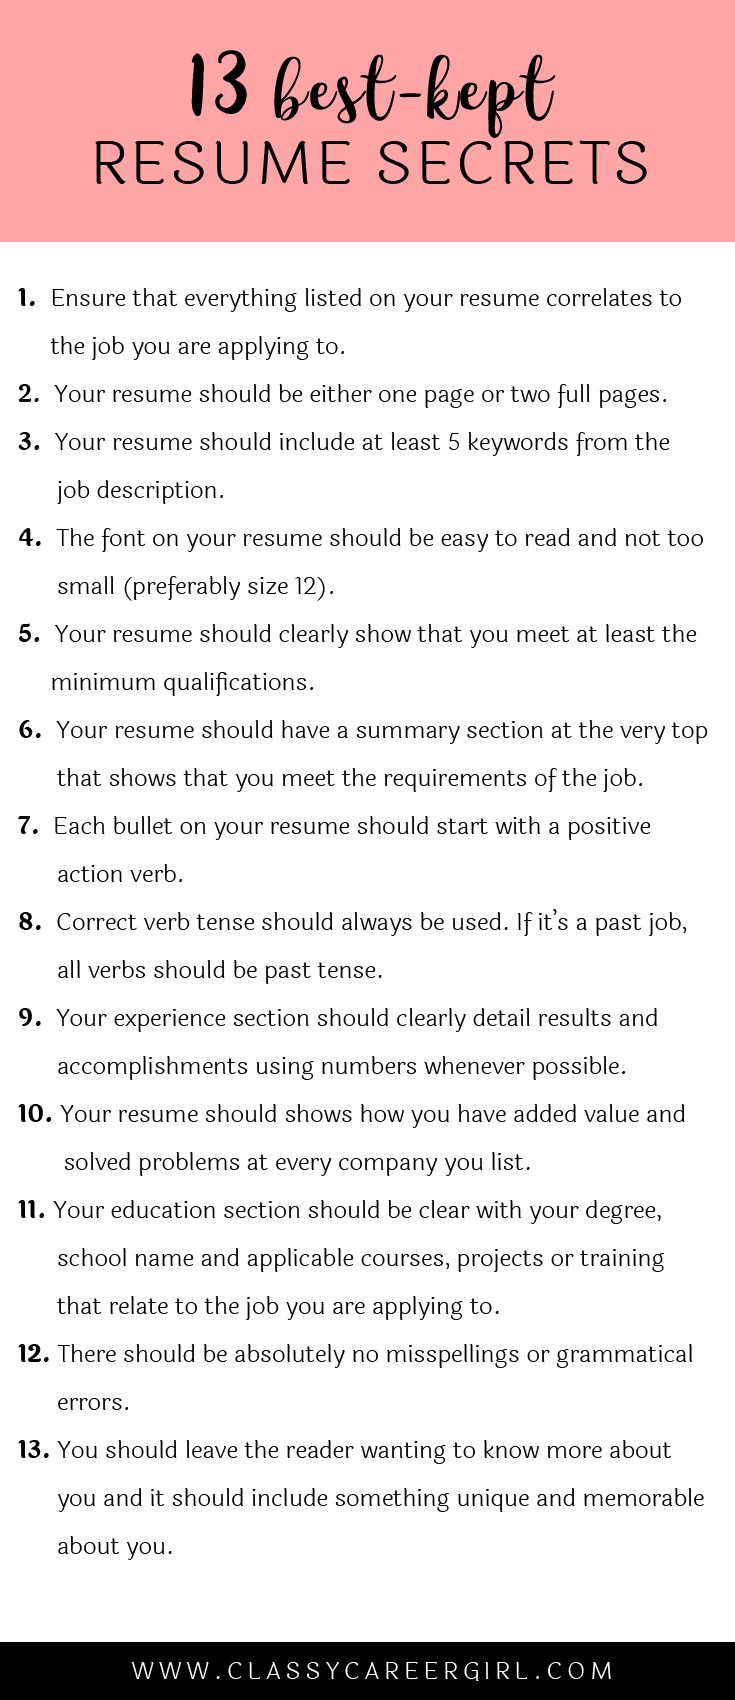 Opposenewapstandardsus  Pretty  Ideas About Resume On Pinterest  Cv Format Resume Cv And  With Luxury Some Hiring Managers Will Toss Your Resume Out If You Dont Know These  With Amazing Customer Service Agent Resume Also Good Resume Names In Addition Law Enforcement Resume Objective And No Resume As Well As Excel Resume Template Additionally Chronological Resume Templates From Pinterestcom With Opposenewapstandardsus  Luxury  Ideas About Resume On Pinterest  Cv Format Resume Cv And  With Amazing Some Hiring Managers Will Toss Your Resume Out If You Dont Know These  And Pretty Customer Service Agent Resume Also Good Resume Names In Addition Law Enforcement Resume Objective From Pinterestcom